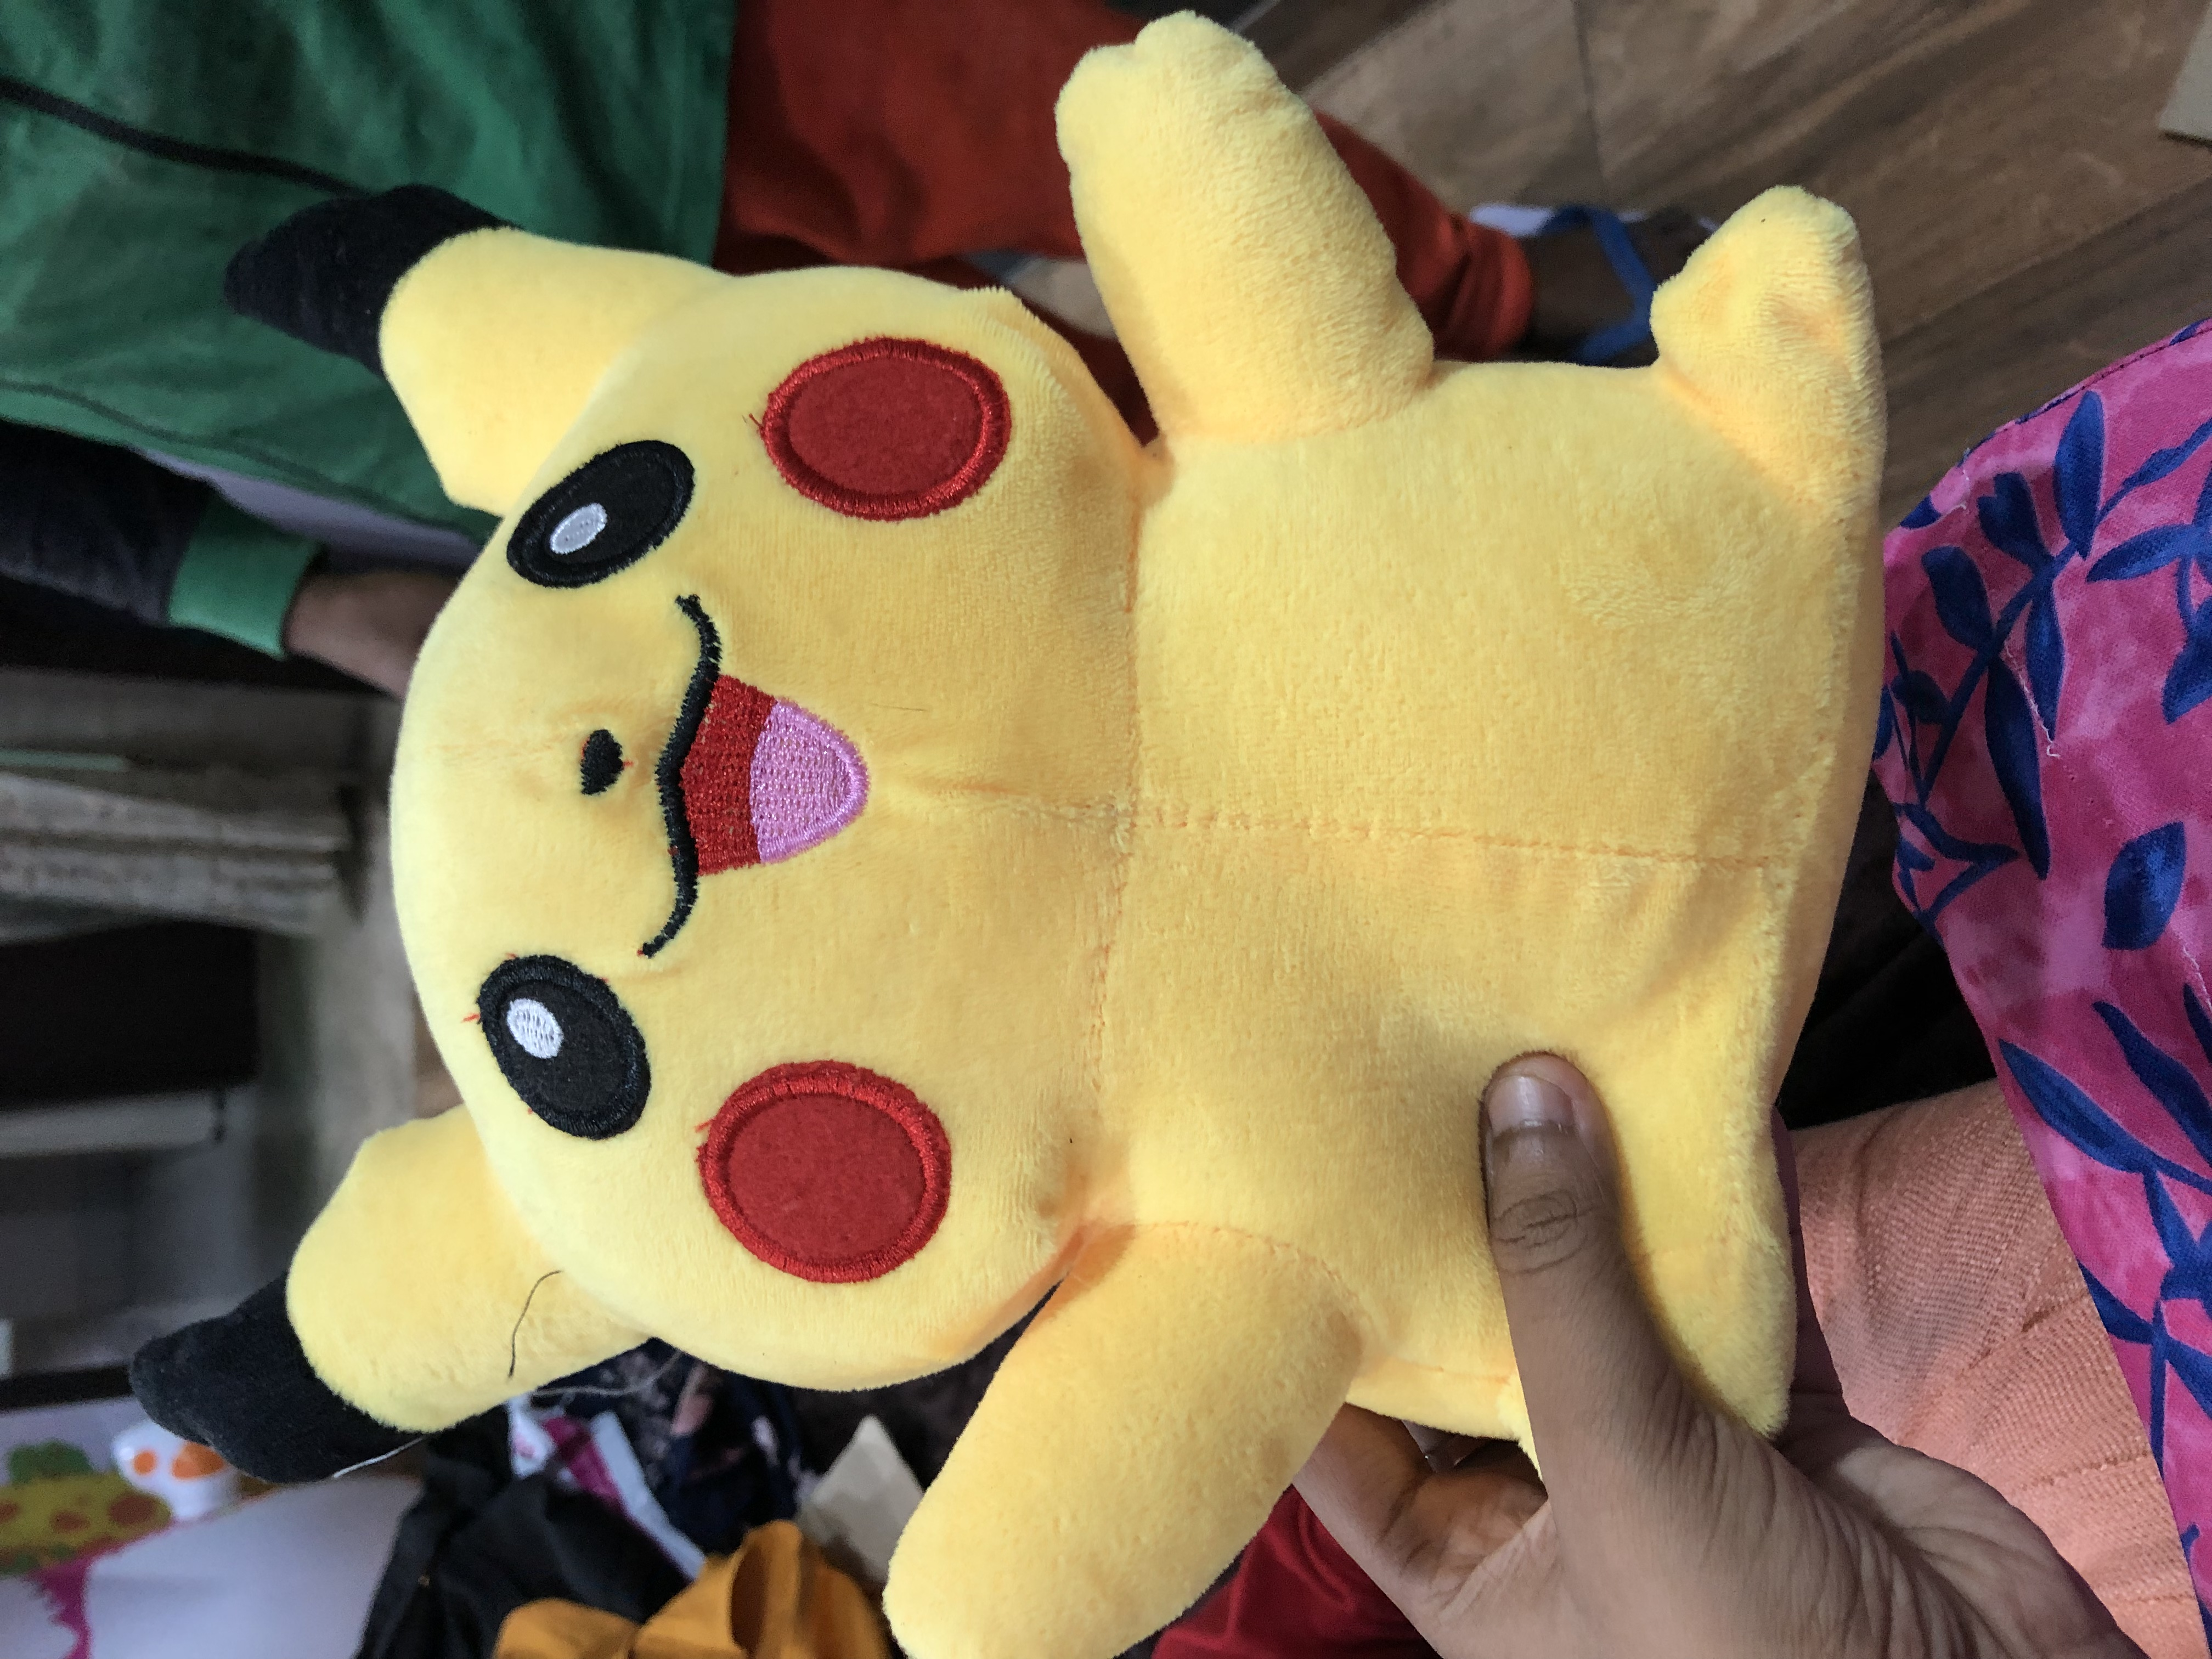 Pokemon Pikachu Plush Toy-Pokemon pikachu toy-By garimabagga